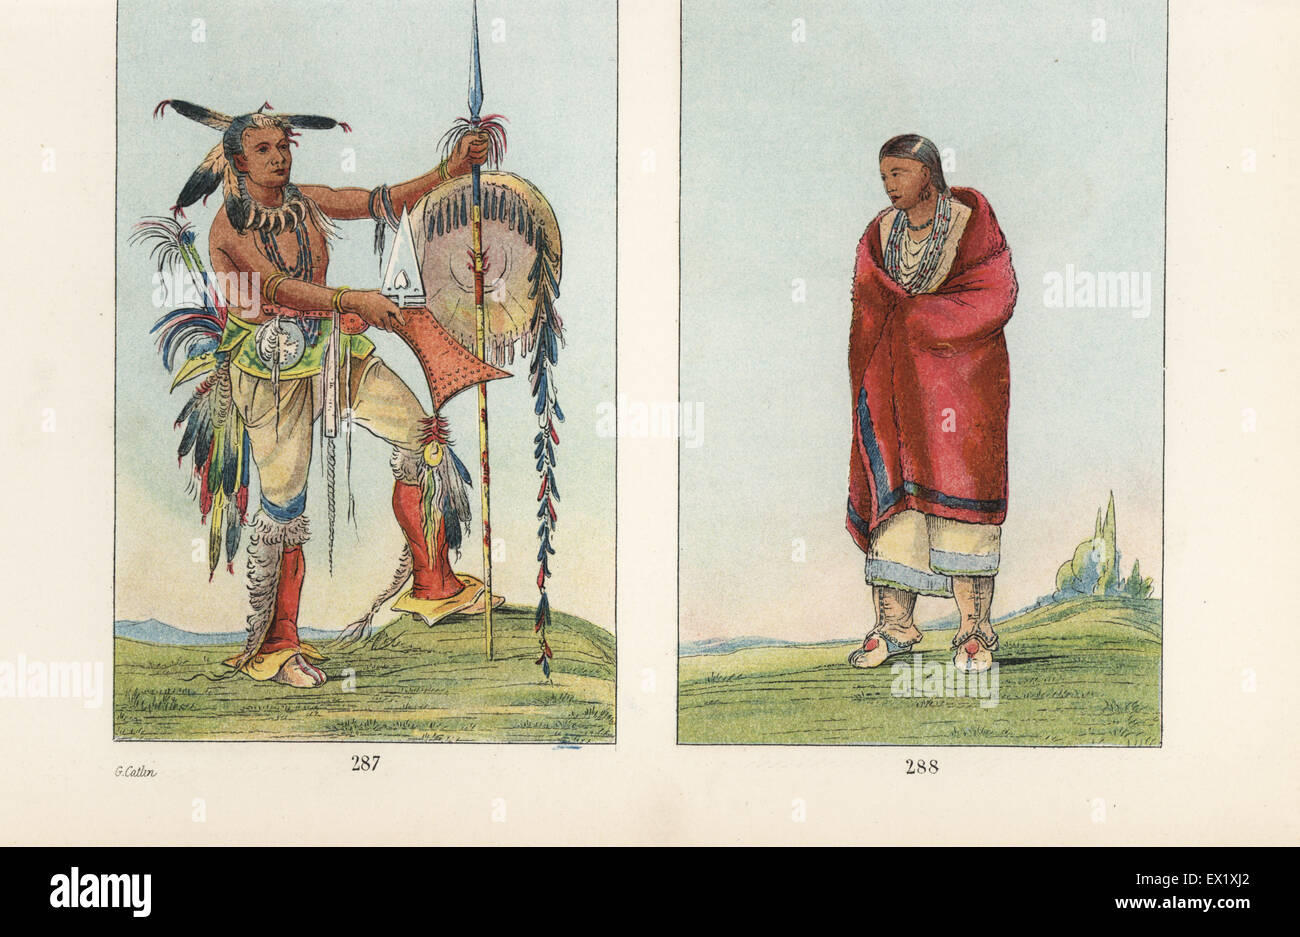 Meskwaki warrior Ah-mou-a, Whale, 287 with shield, staff, war club, scalp-locks, bear teeth necklace and moccasins, - Stock Image